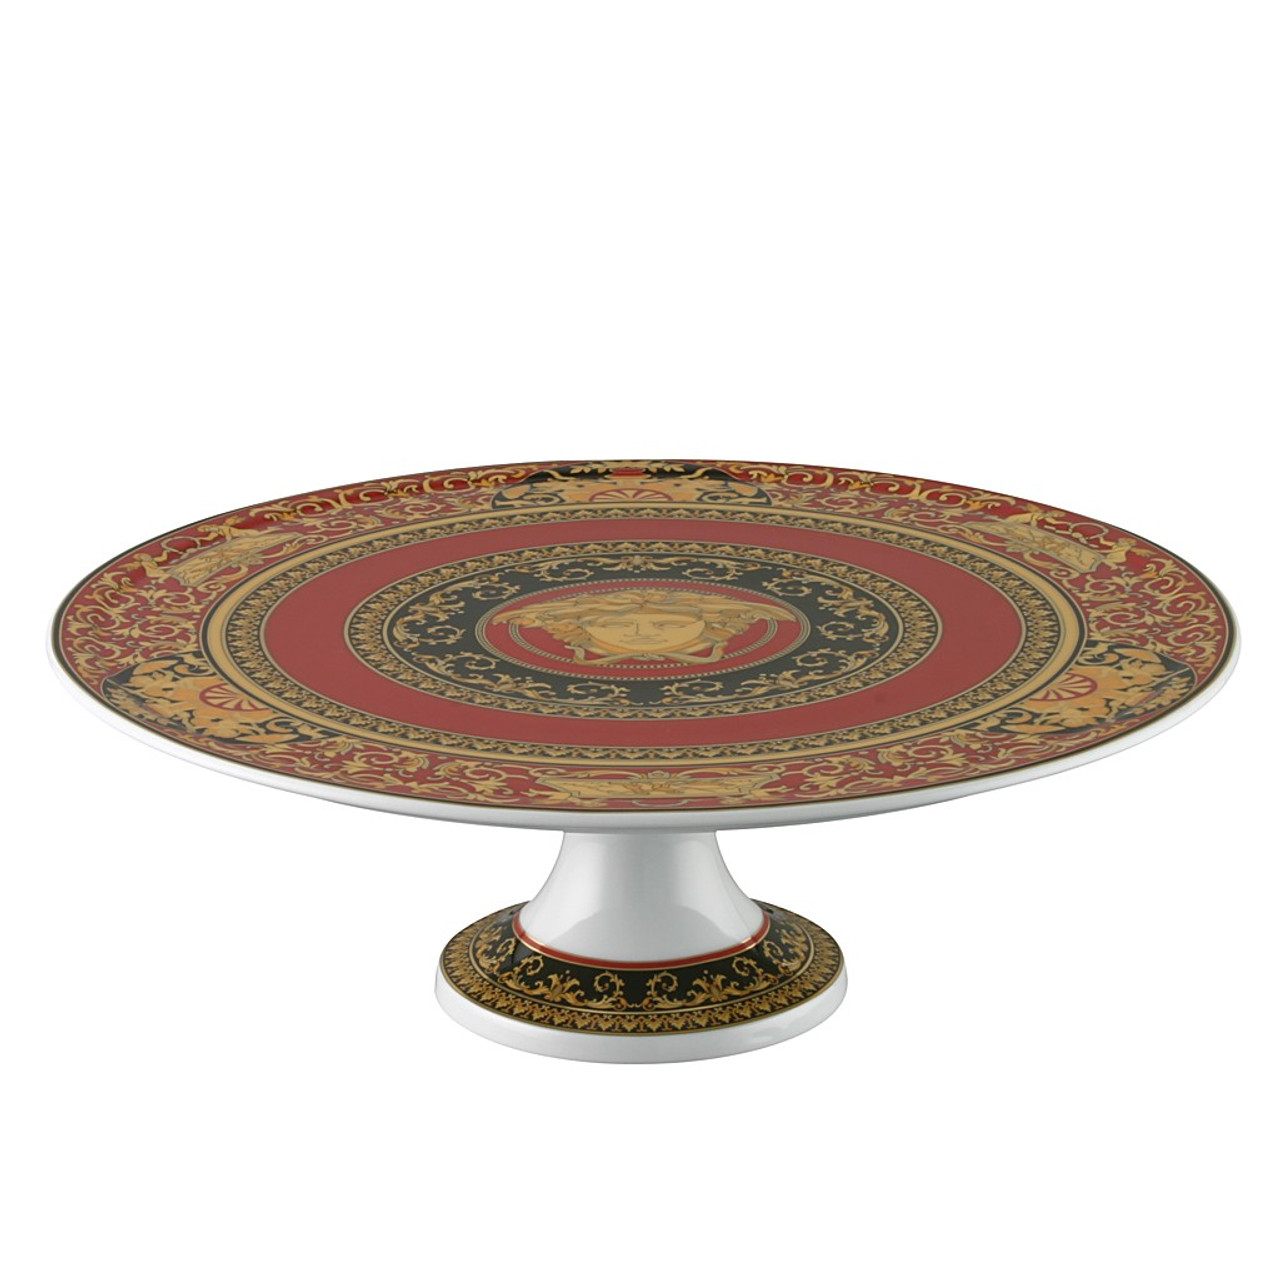 Footed Cake Plate Porcelain 13 Inch Versace Medusa Red